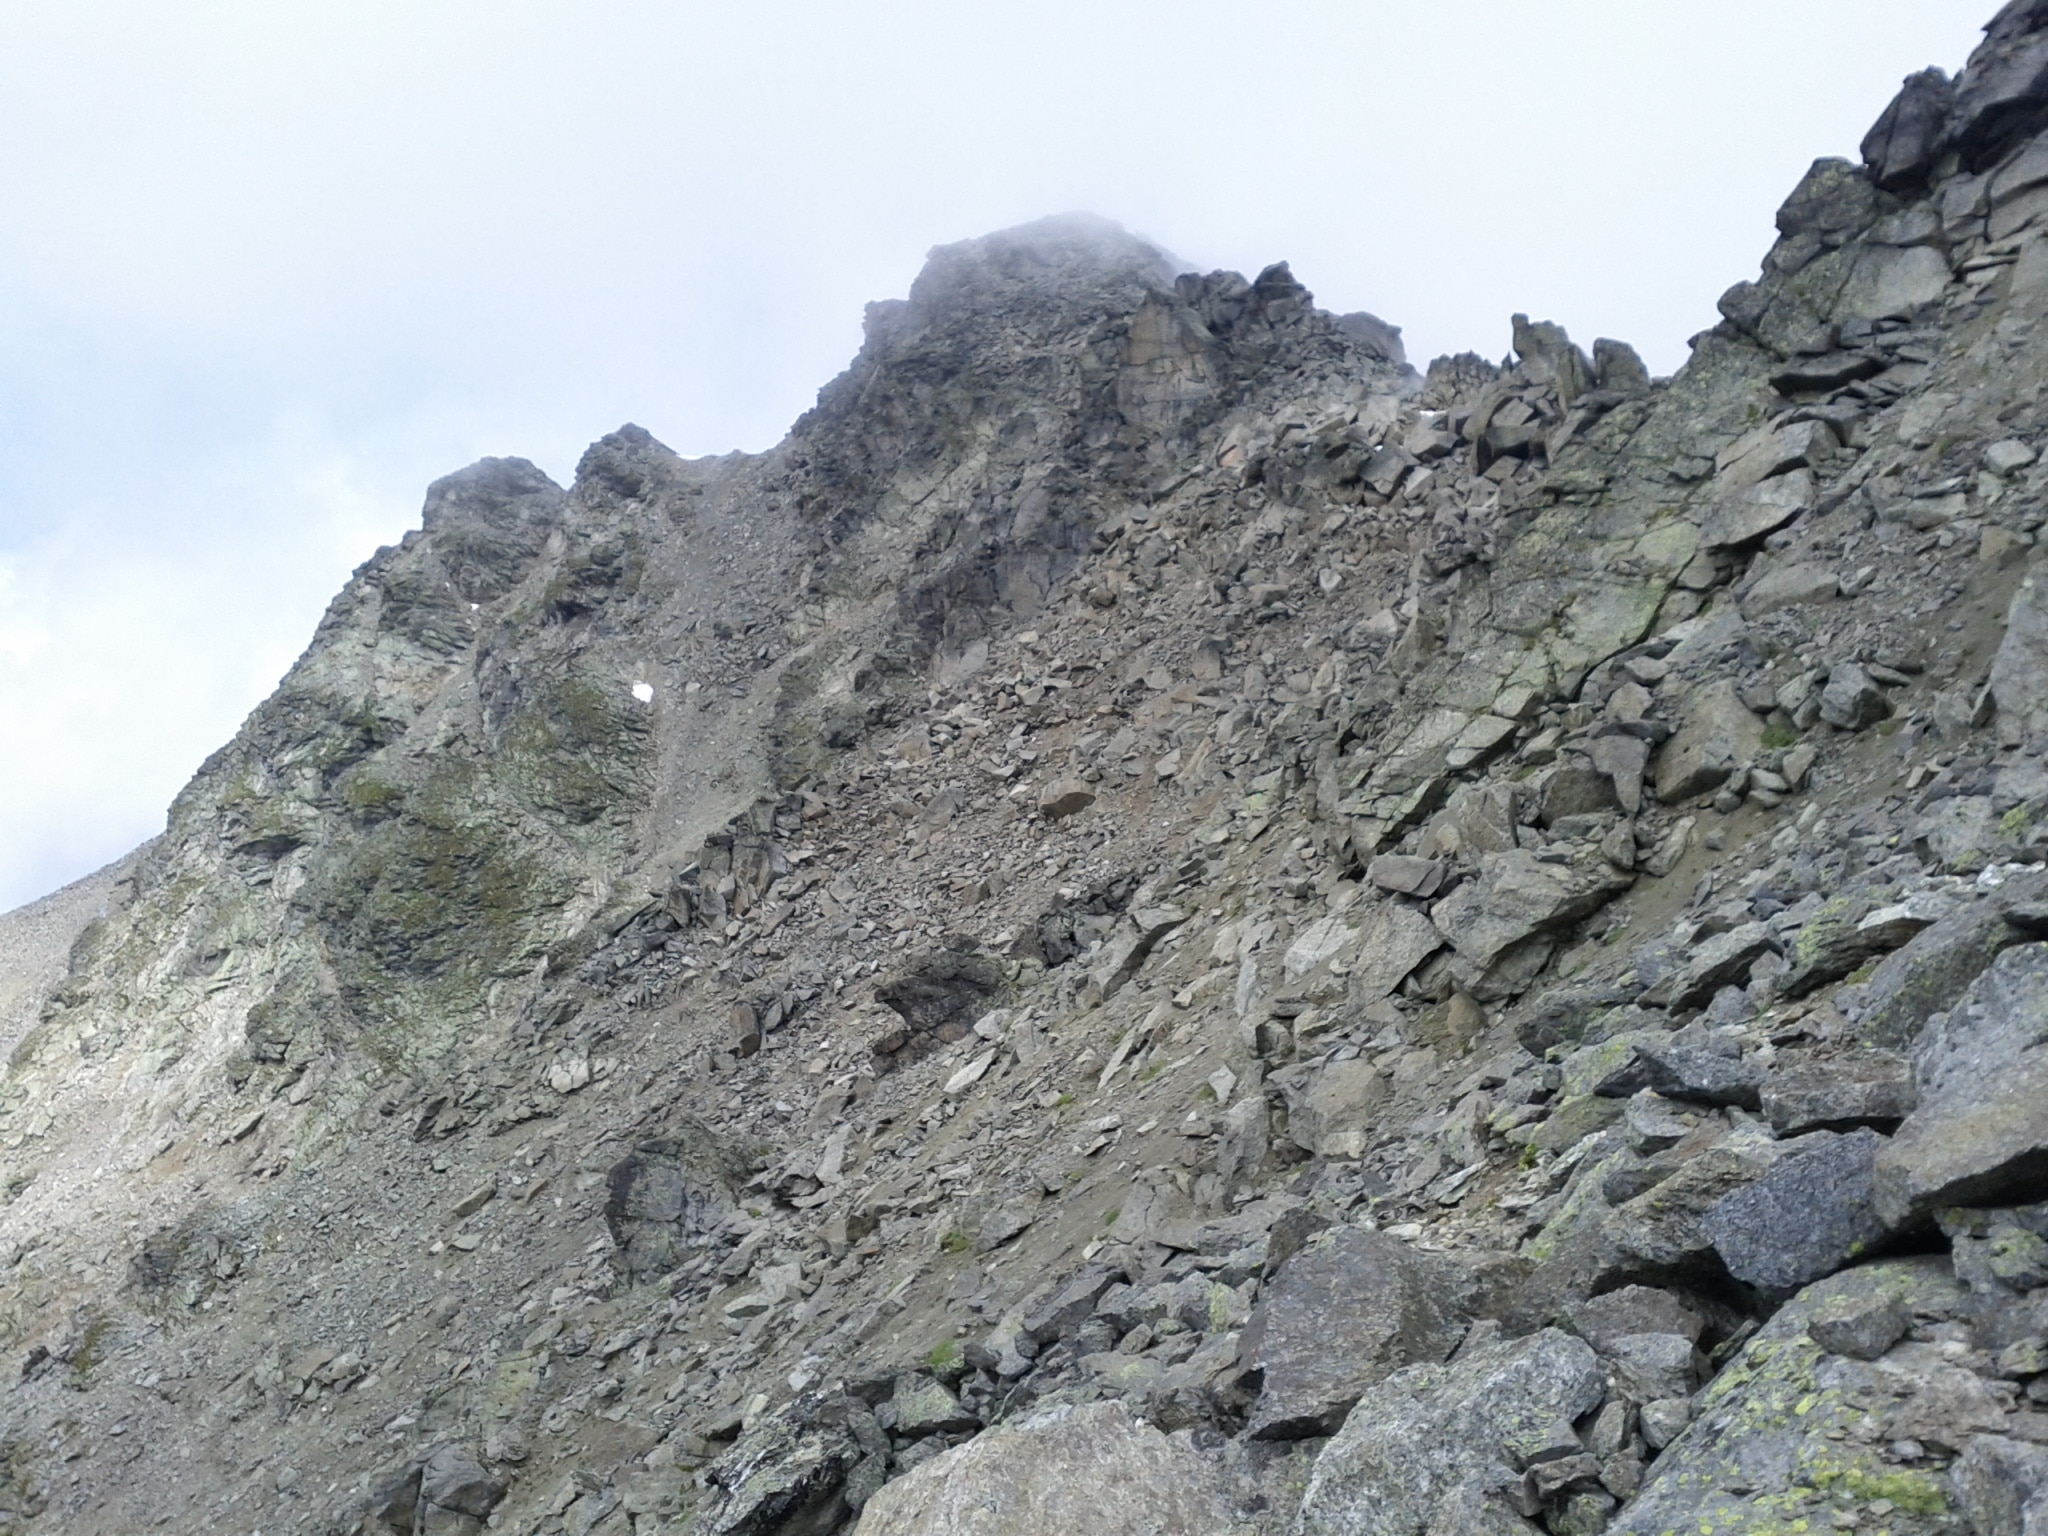 The summit of Sesvenna briefly revealed itself during my descent.